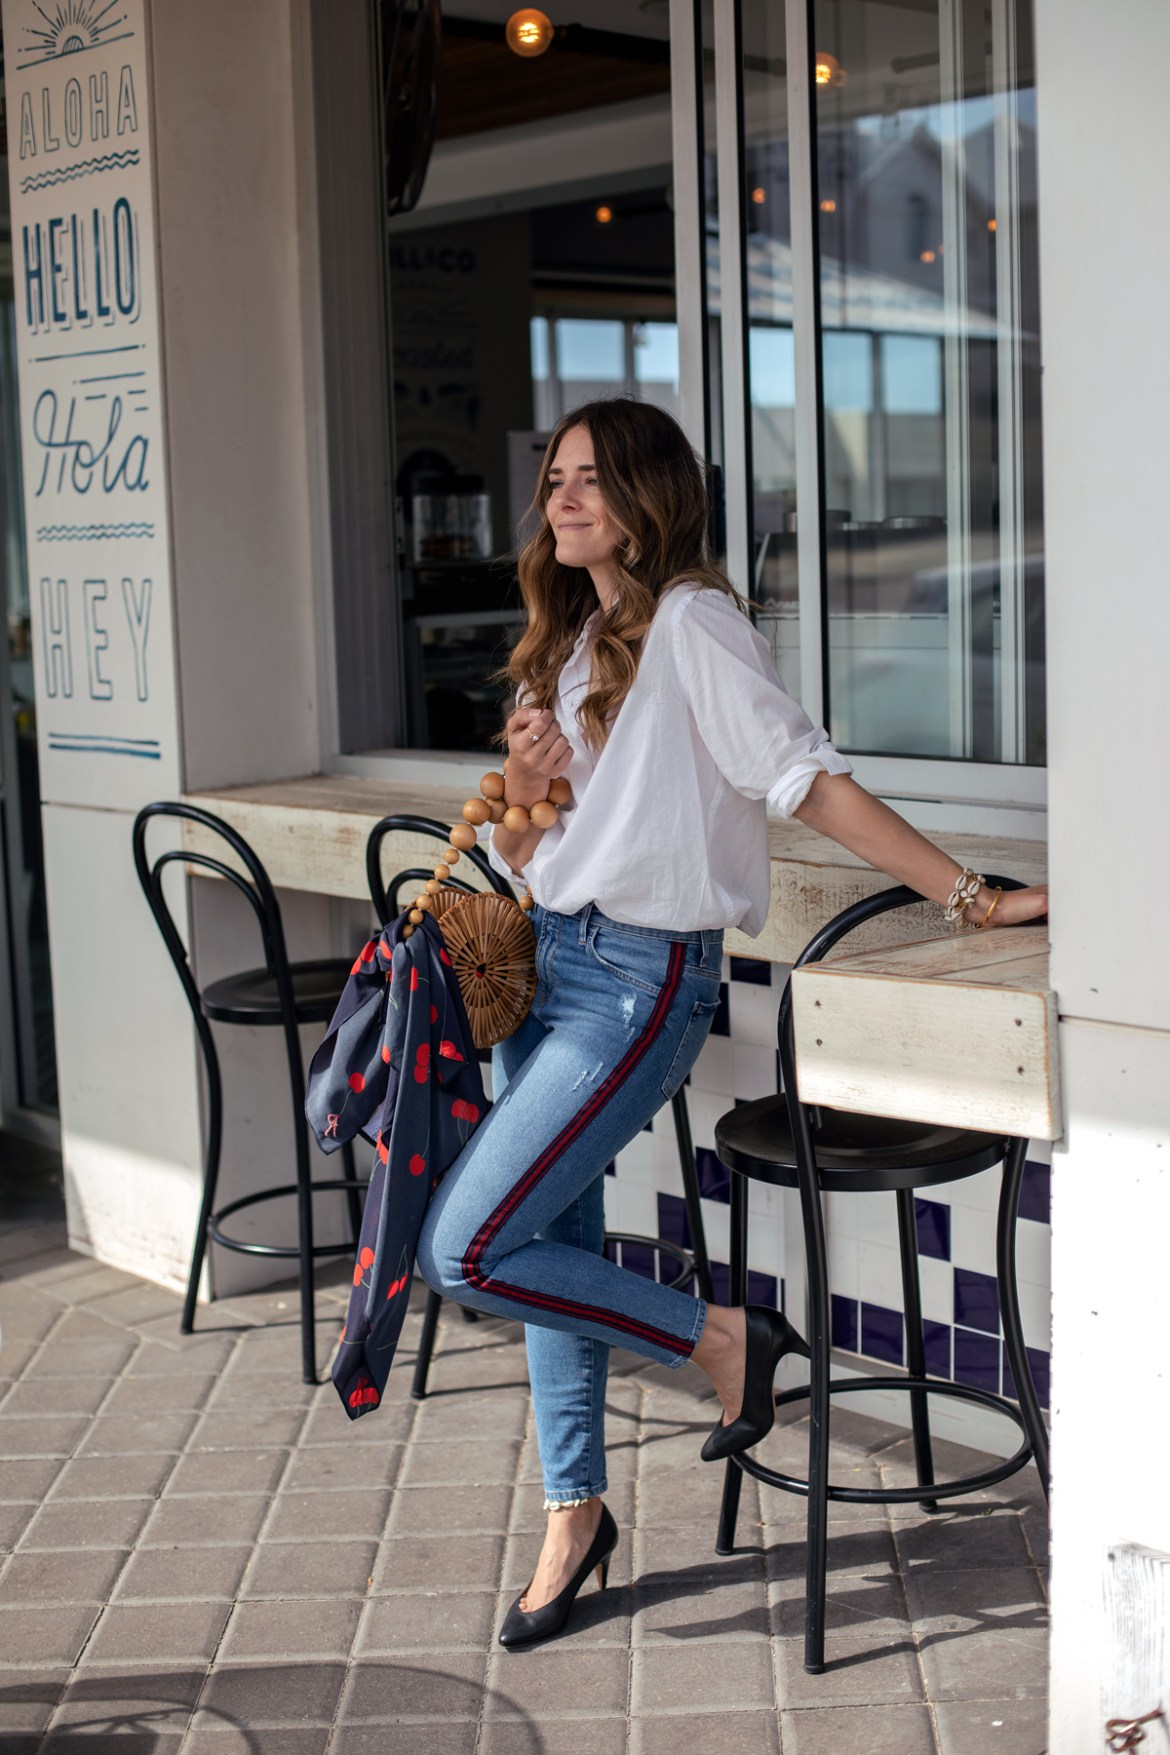 blue denim Mavi jeans with red stripe, Cult Gaia round bamboo bag, Realisation Par cherry print handkerchief and Jac + Jack white shirt worn by Inspiring Wit blogger Jenelle